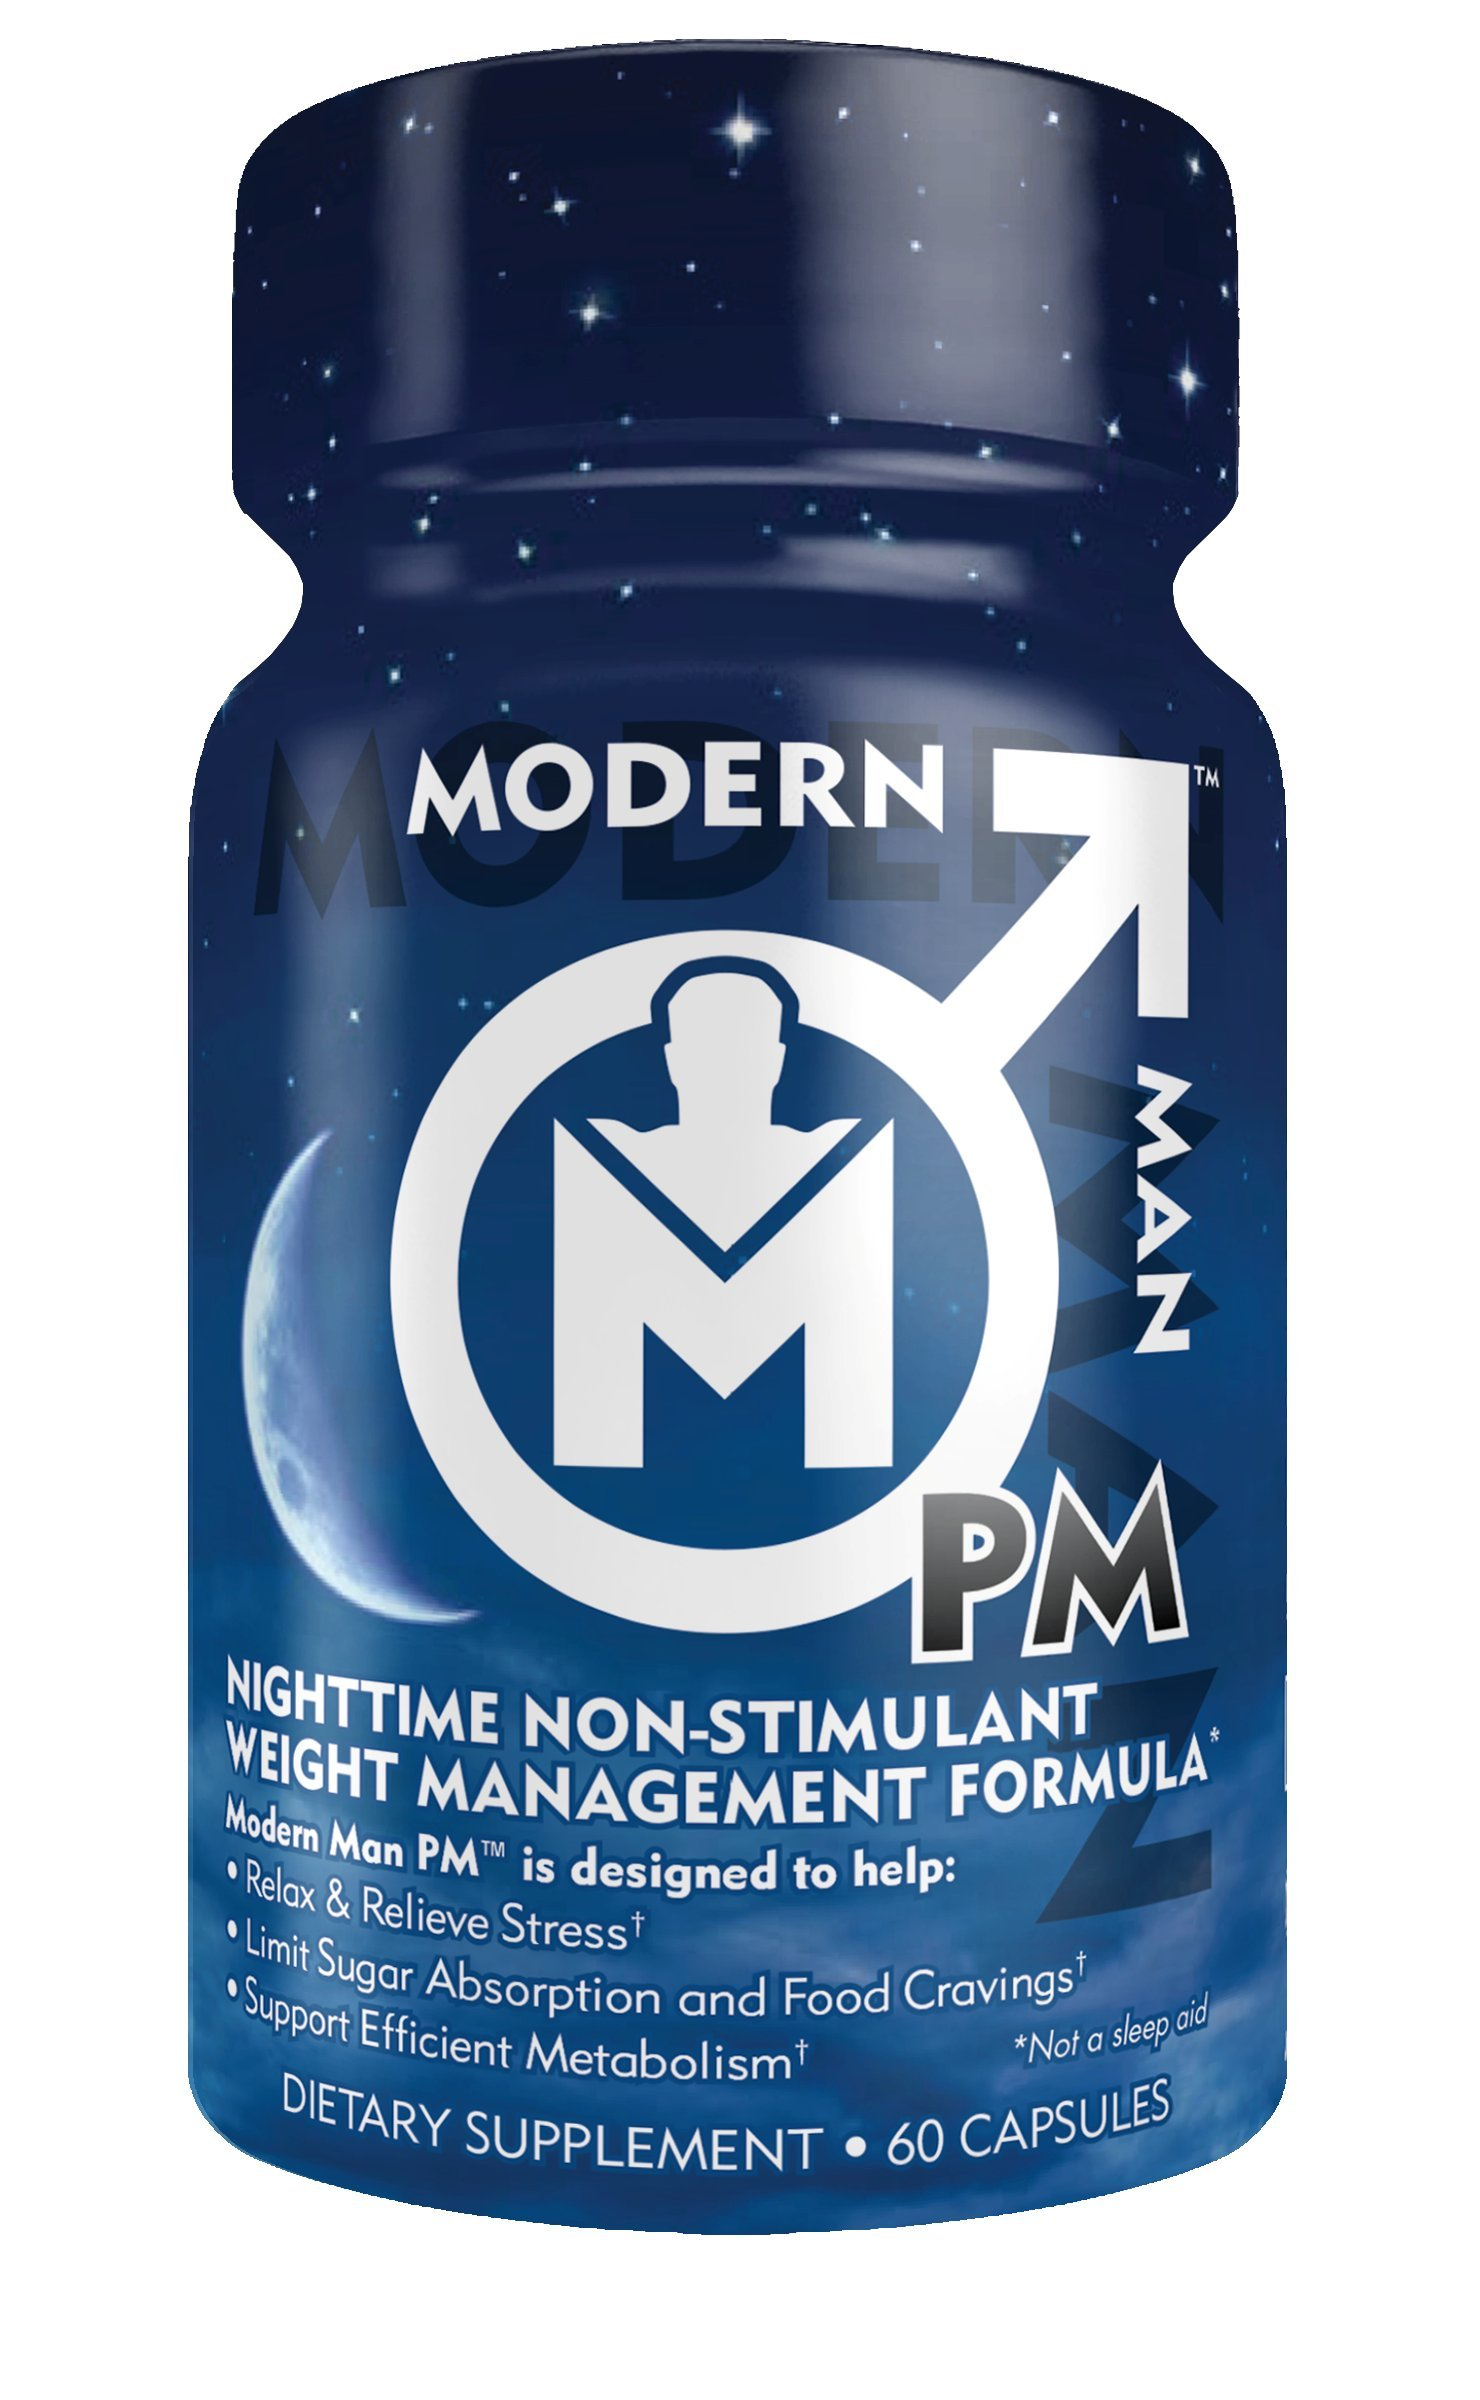 Modern Man PM Fat Burner - Sleep Aid, Weight Loss & Testosterone Booster for Men, Best Night Time Metabolism Booster & Caffeine Free Sleep Supplement | Burn Belly Fat & Build Lean Muscle, 60 Pills by Modern Man Products